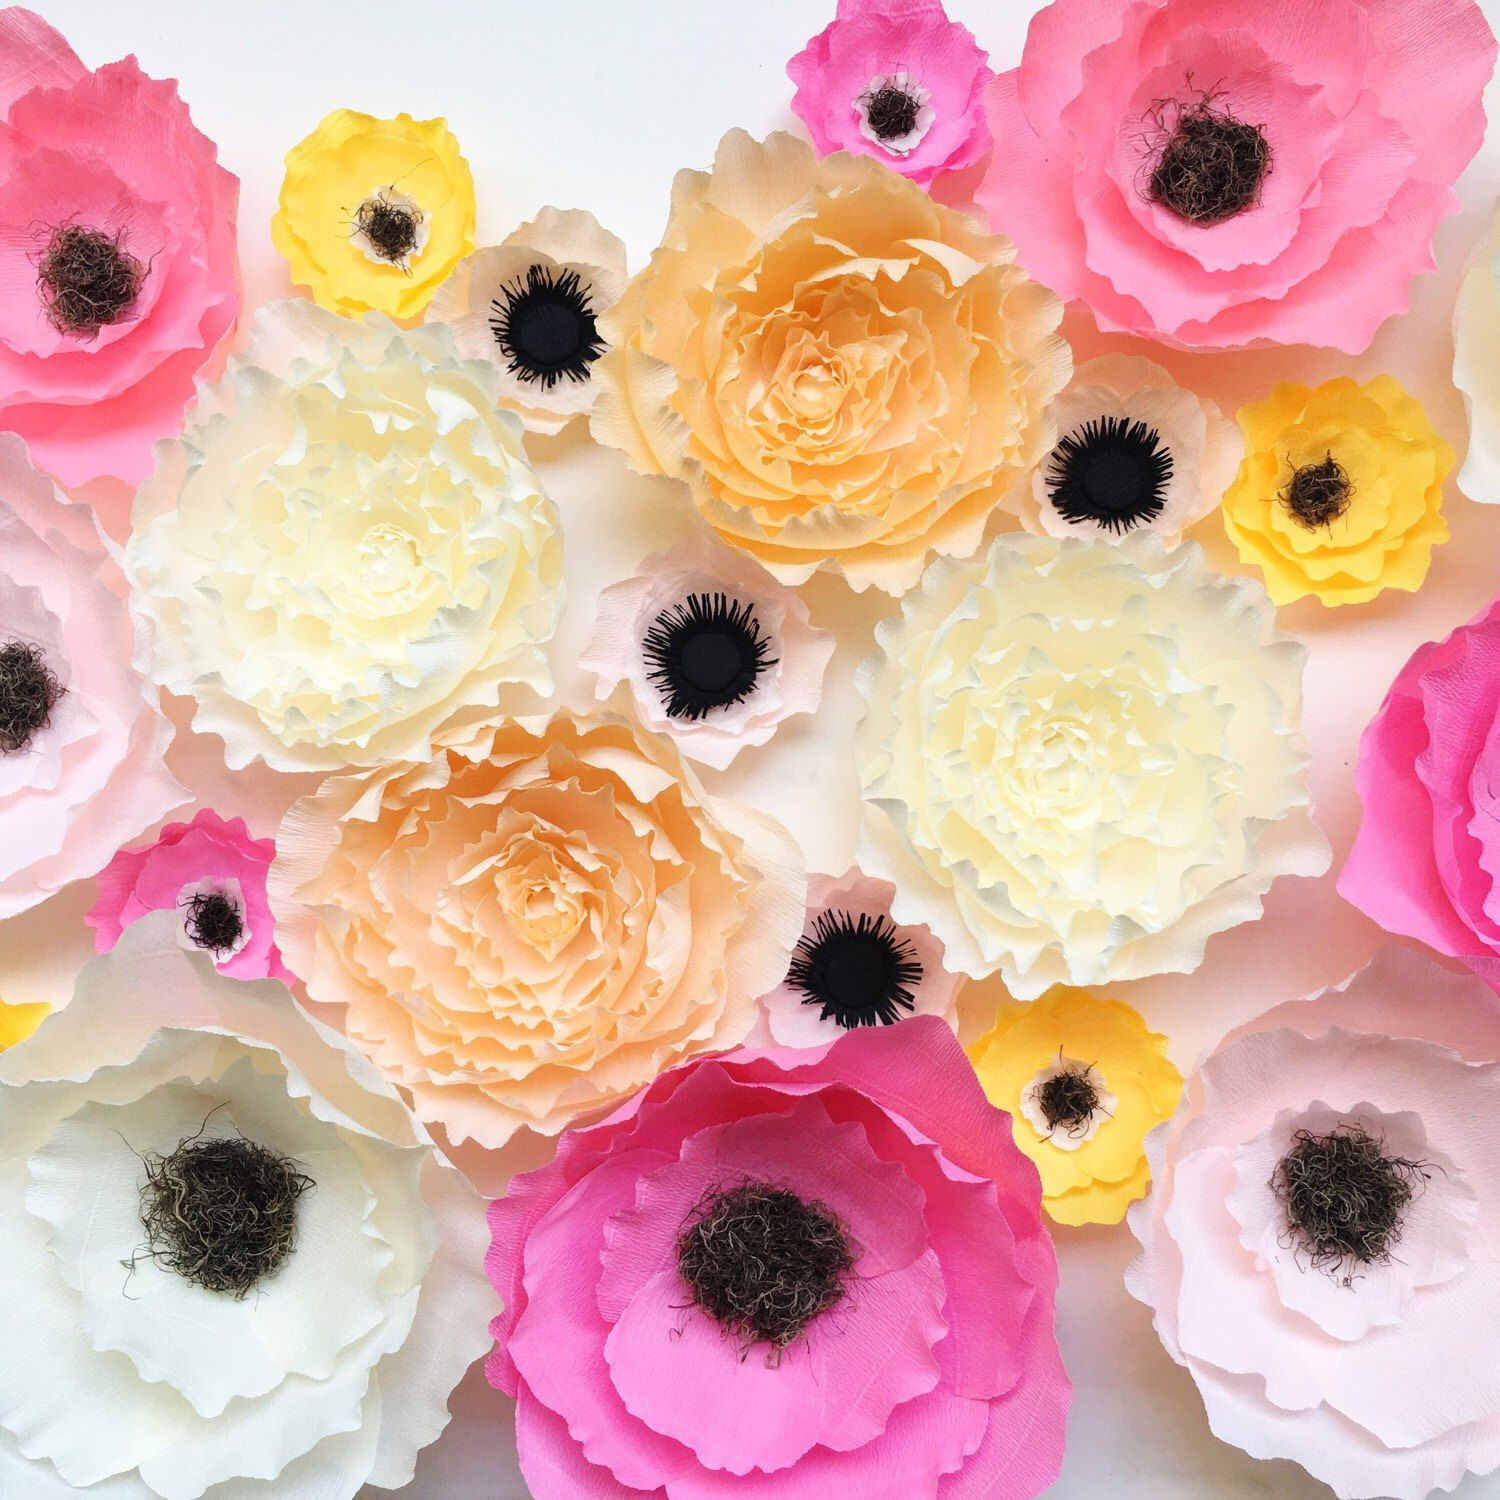 Crepe paper flower wall art | Our products | Pinterest | Crepe paper